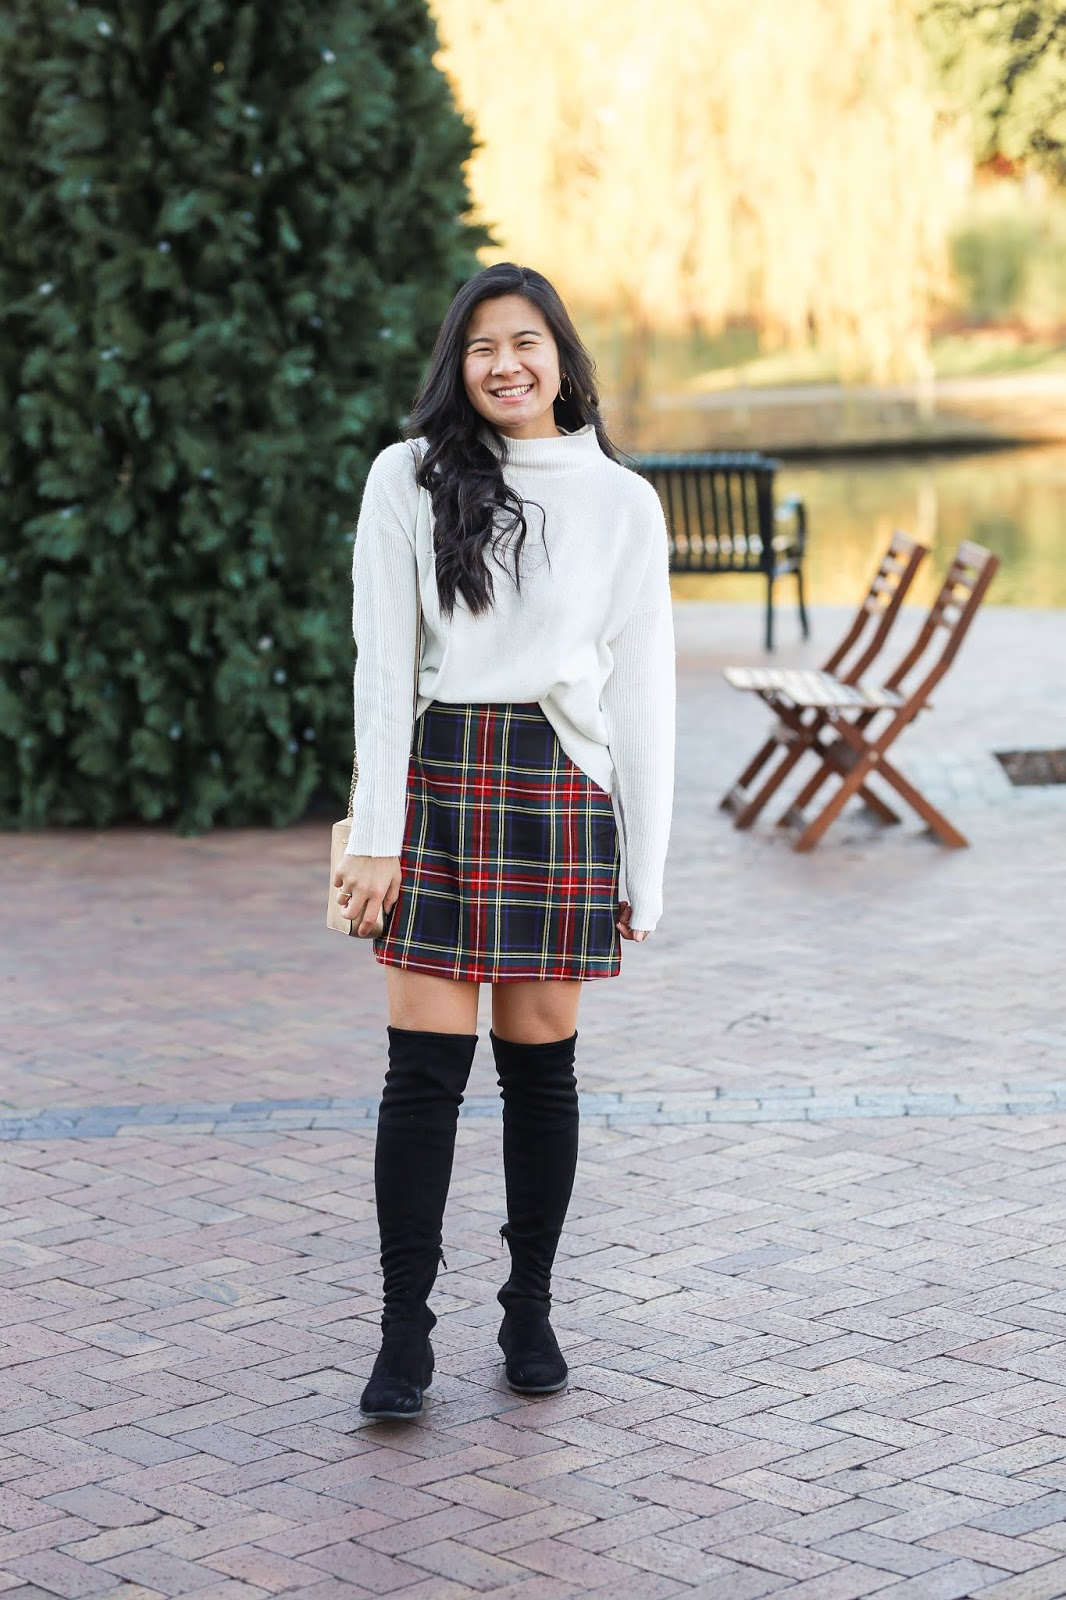 Holiday plaid skirt outfit